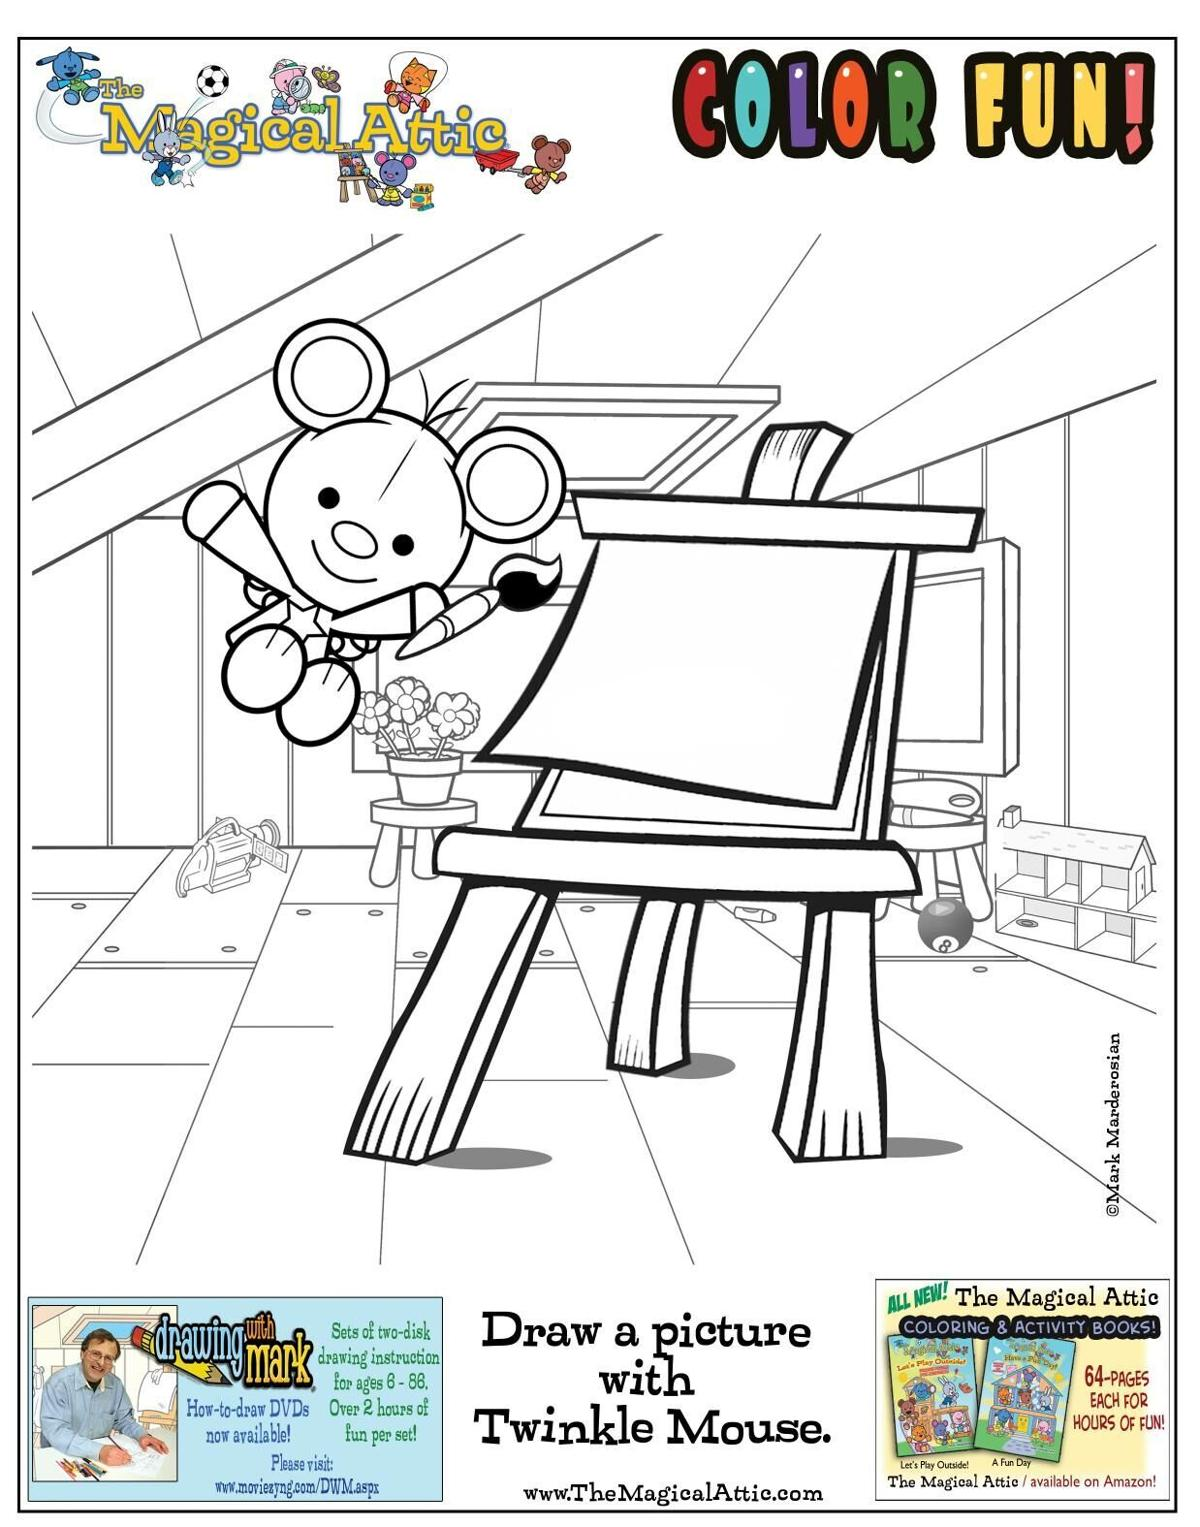 Draw a picture with Twinkle Mouse